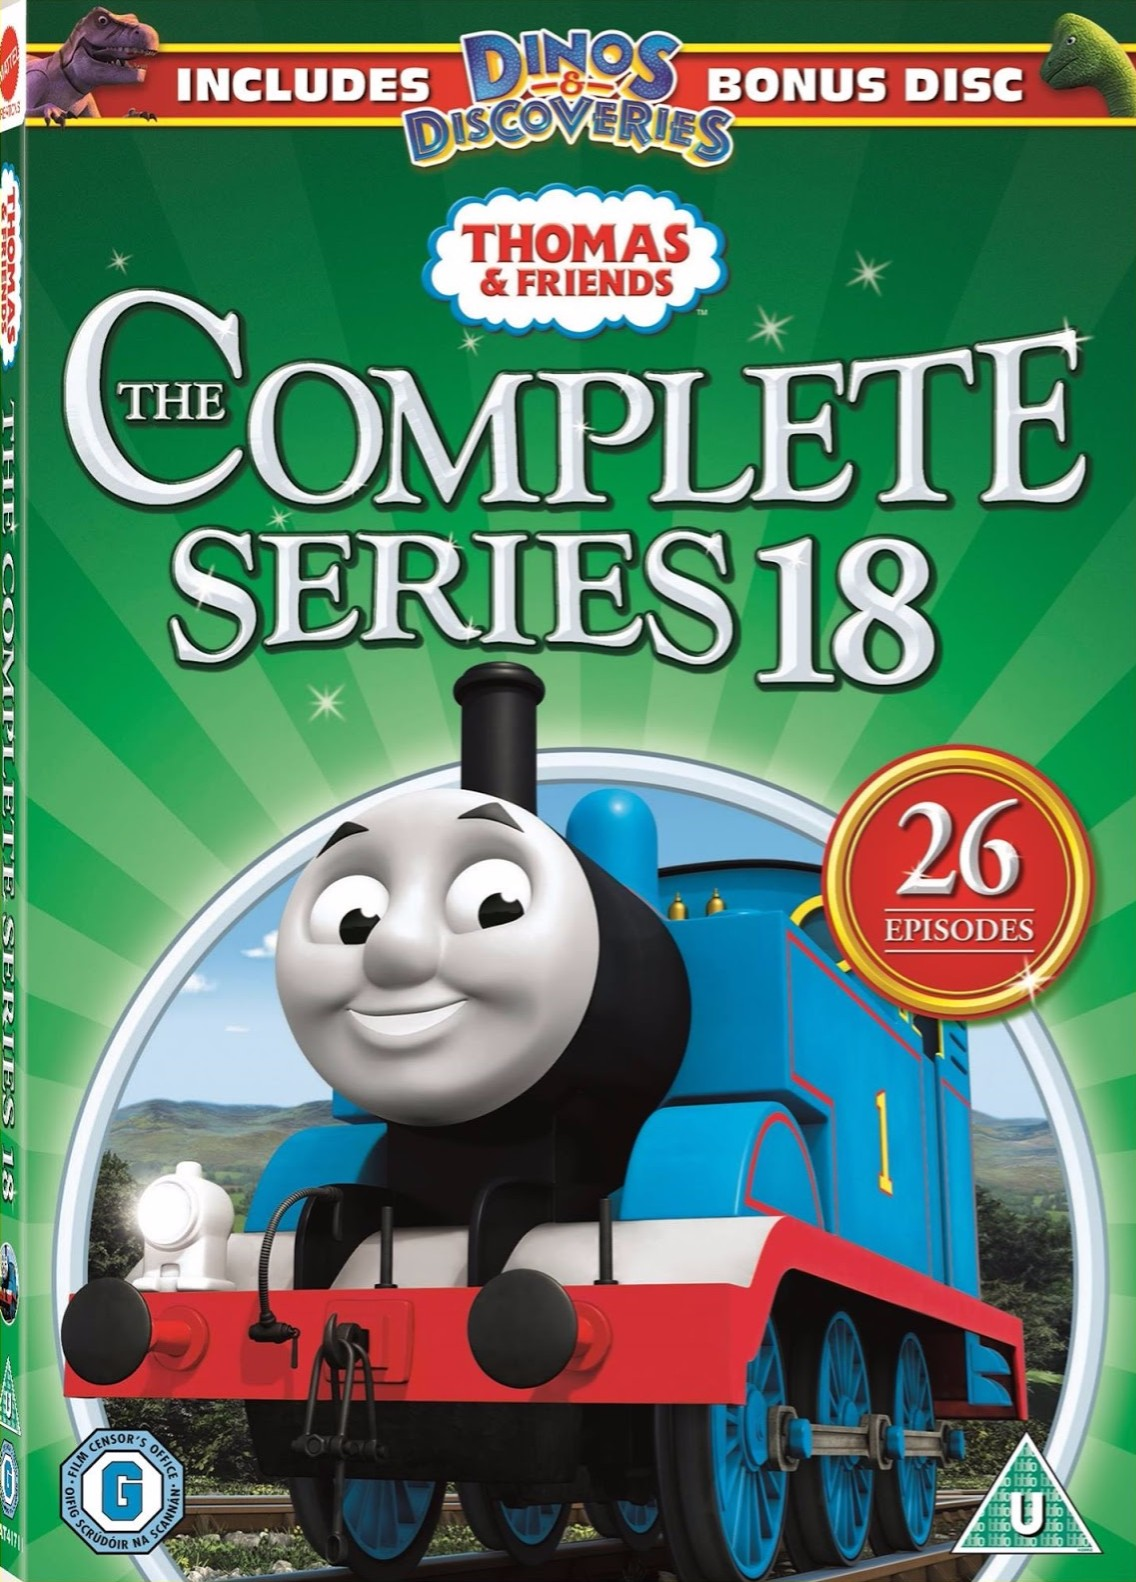 The Complete Series 18